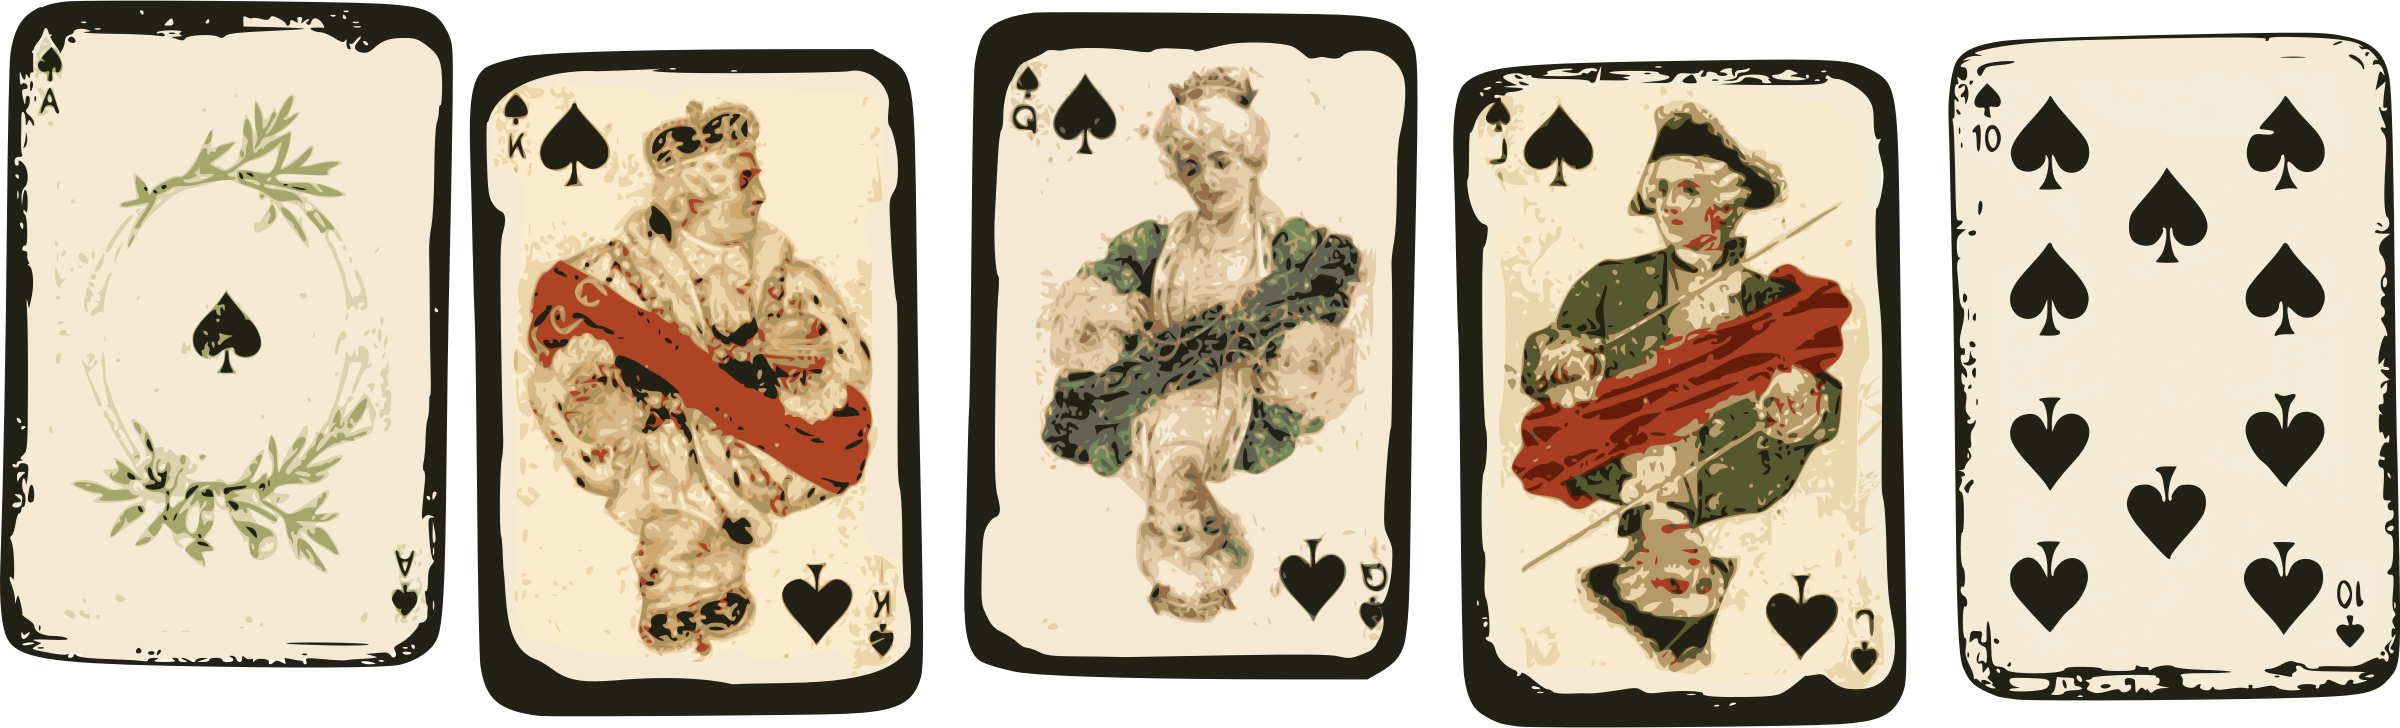 Royal Flush - Poker Cards by j4p4n